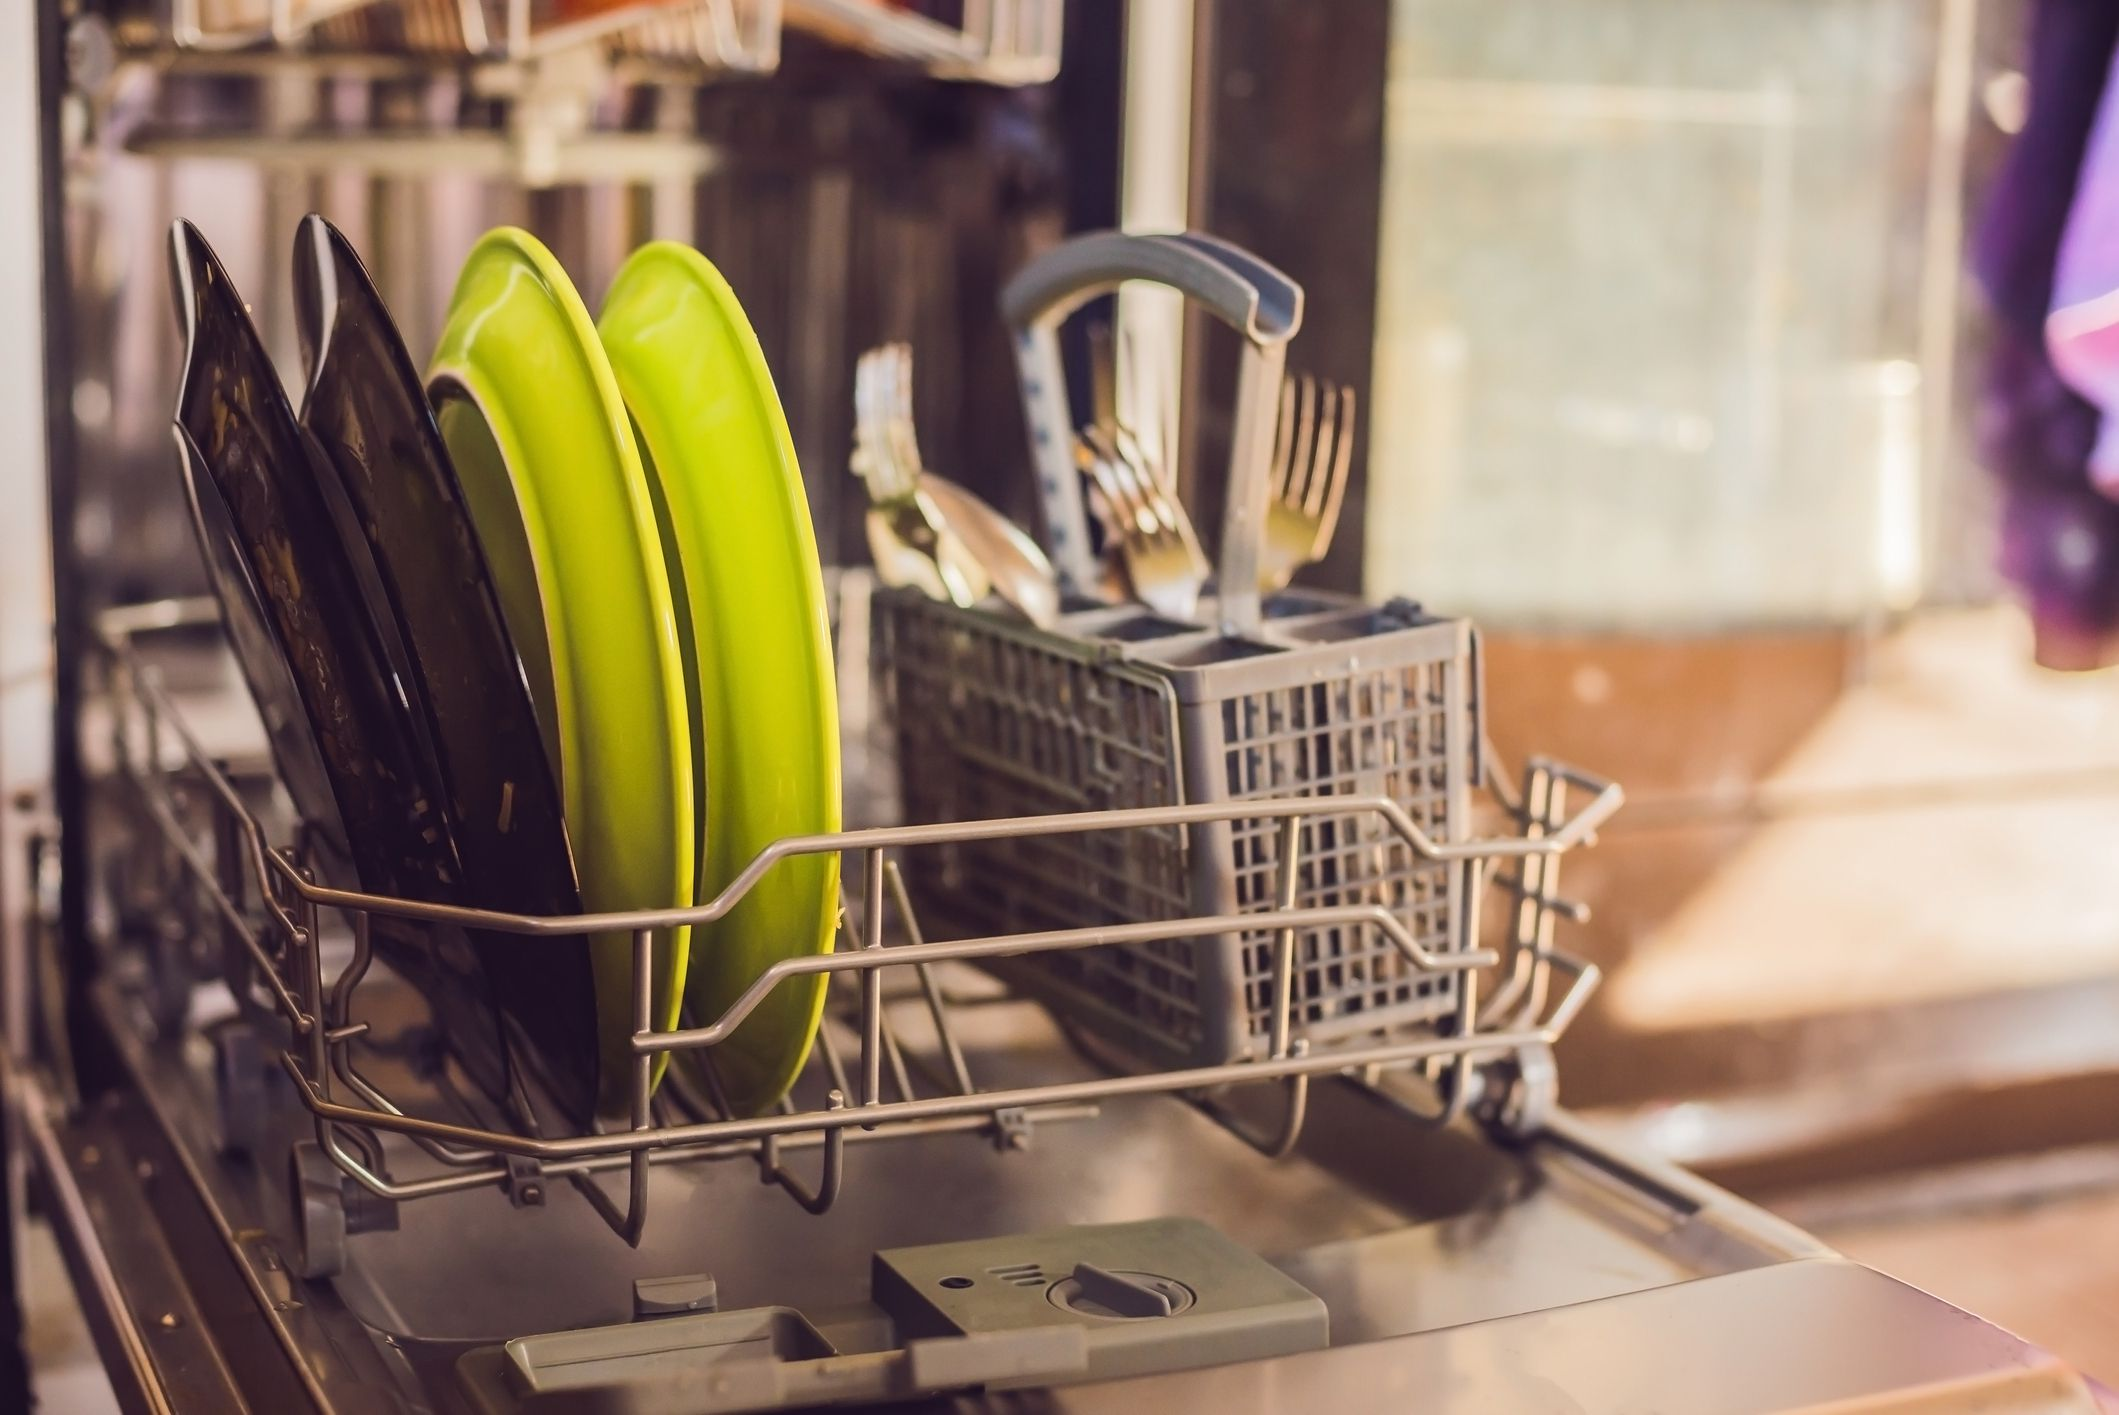 10 Dishwasher Mistakes And How To Avoid Them